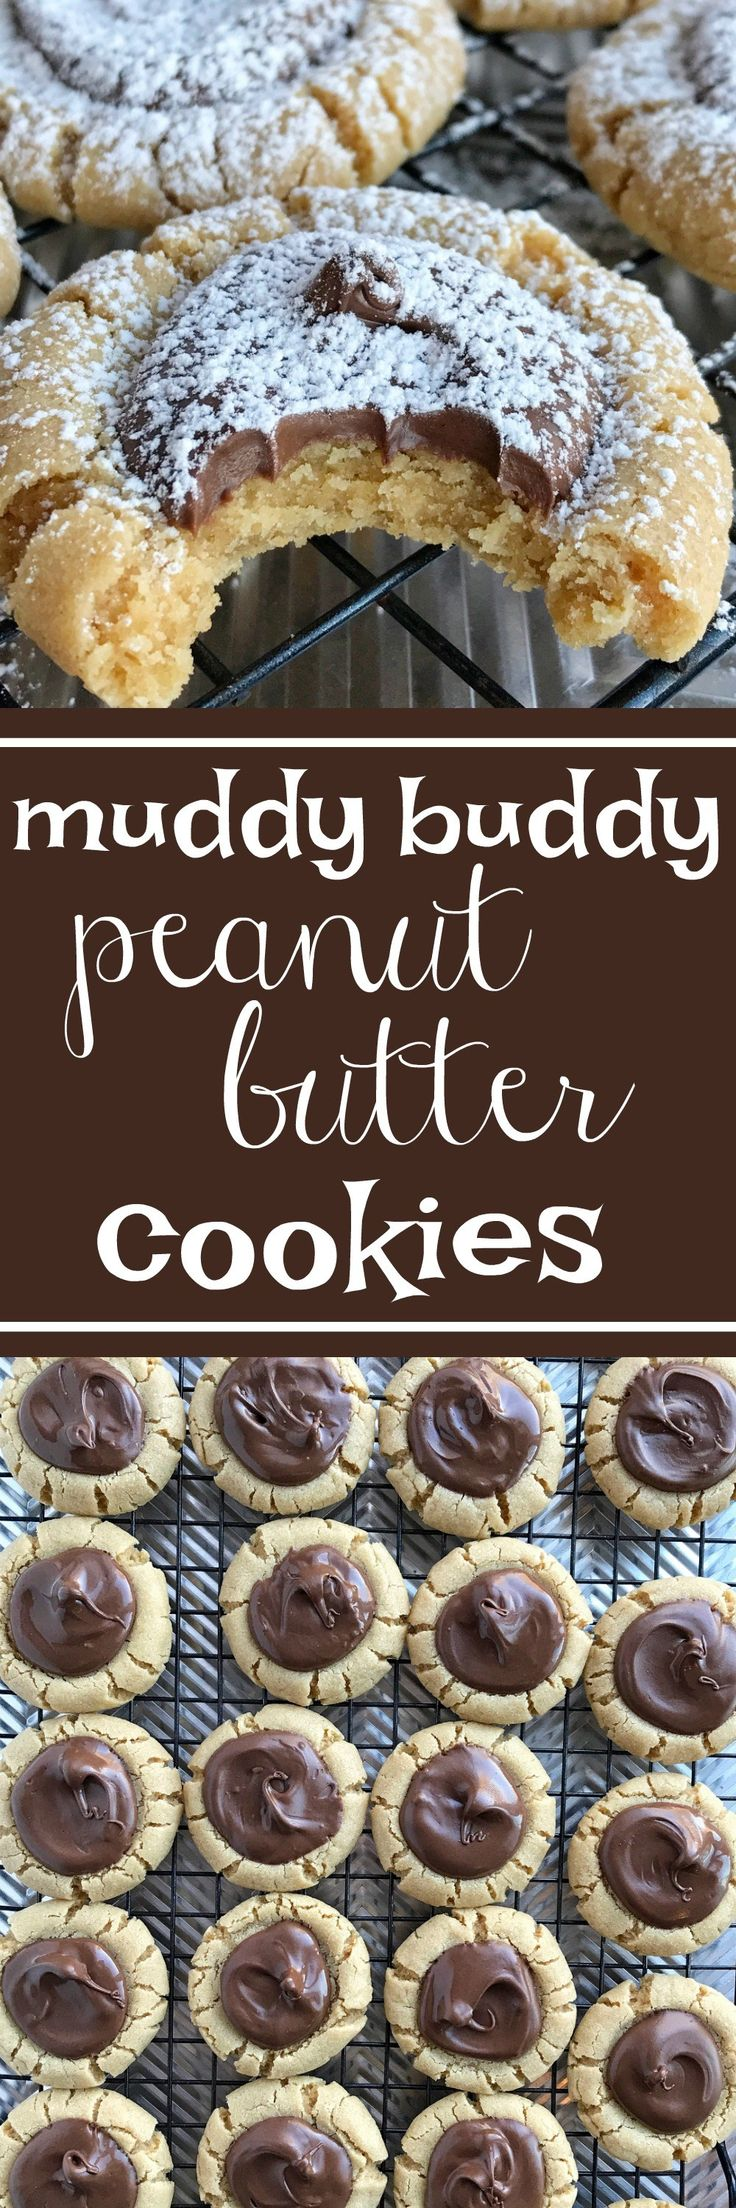 Muddy Buddy Peanut Butter Cookies   Your favorite snack made into a cookie! Muddy buddy peanut butter cookies are a soft & thick peanut butter cookie with a chocolate center, and dusted in powdered sugar. Perfect dessert or even better for a Christmas cookie plate. These may look hard but they are really very simple! www.togetherasfamily.com #christmascookies #peanutbuttercookies #peanutbutterrecipes #recipe